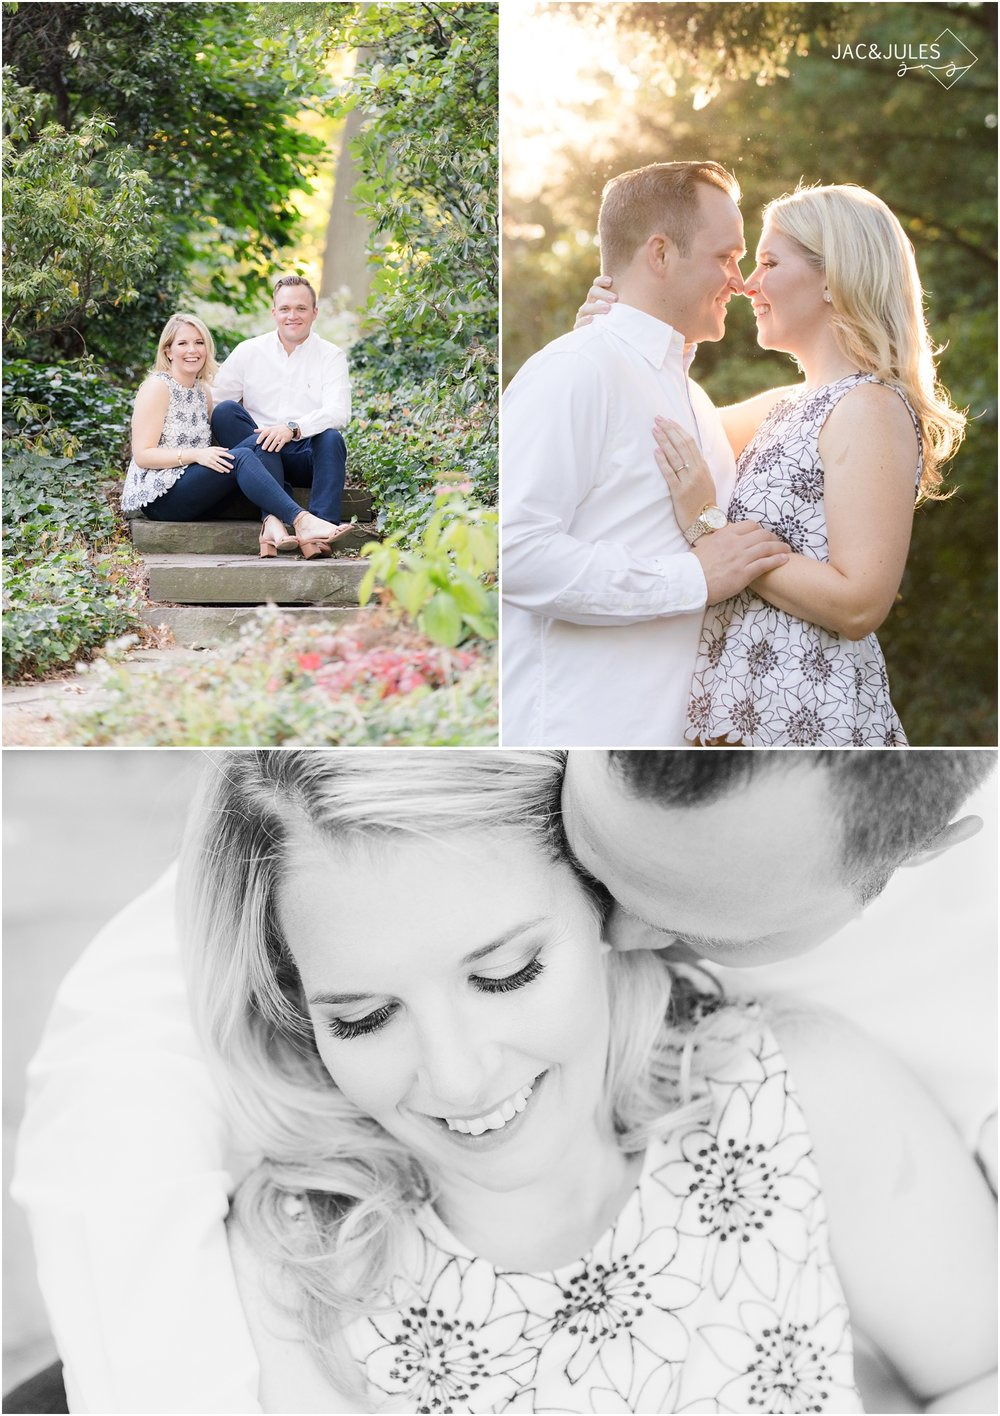 Romantic Engagement photos at Van Vleck House and Gardens in Montclair, NJ.